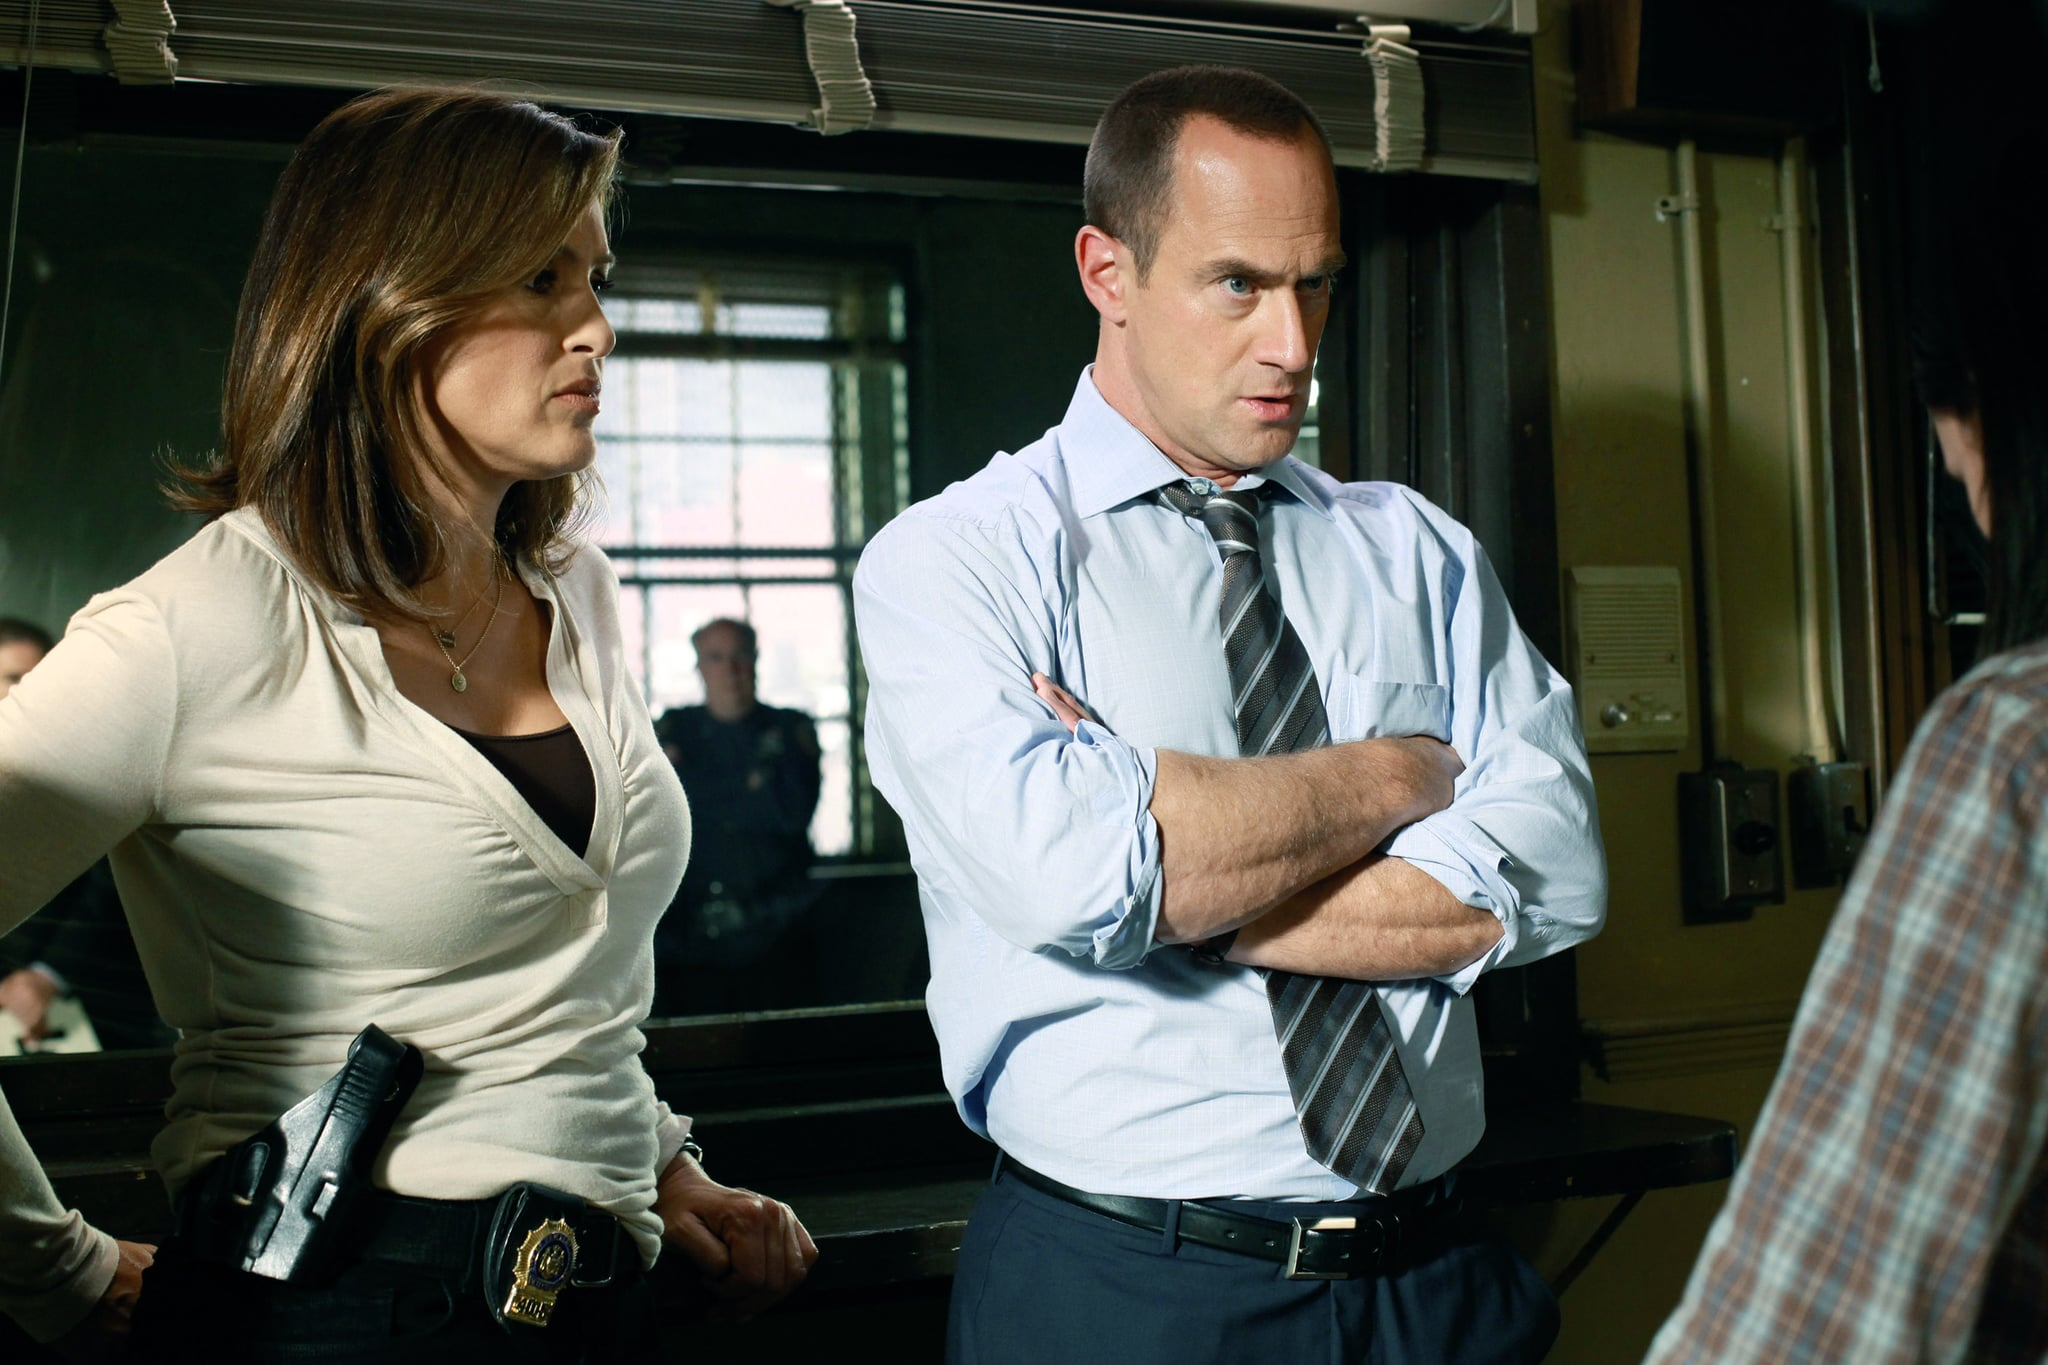 LAW & ORDER: SPECIAL VICTIMS UNIT, (from left): Mariska Hargitay, Christopher Meloni, 'Behave', (Season 12, ep. 1203, aired Sept. 28, 2010), 1999-. photo: Will Hart /  NBC / Courtesy Everett Collection